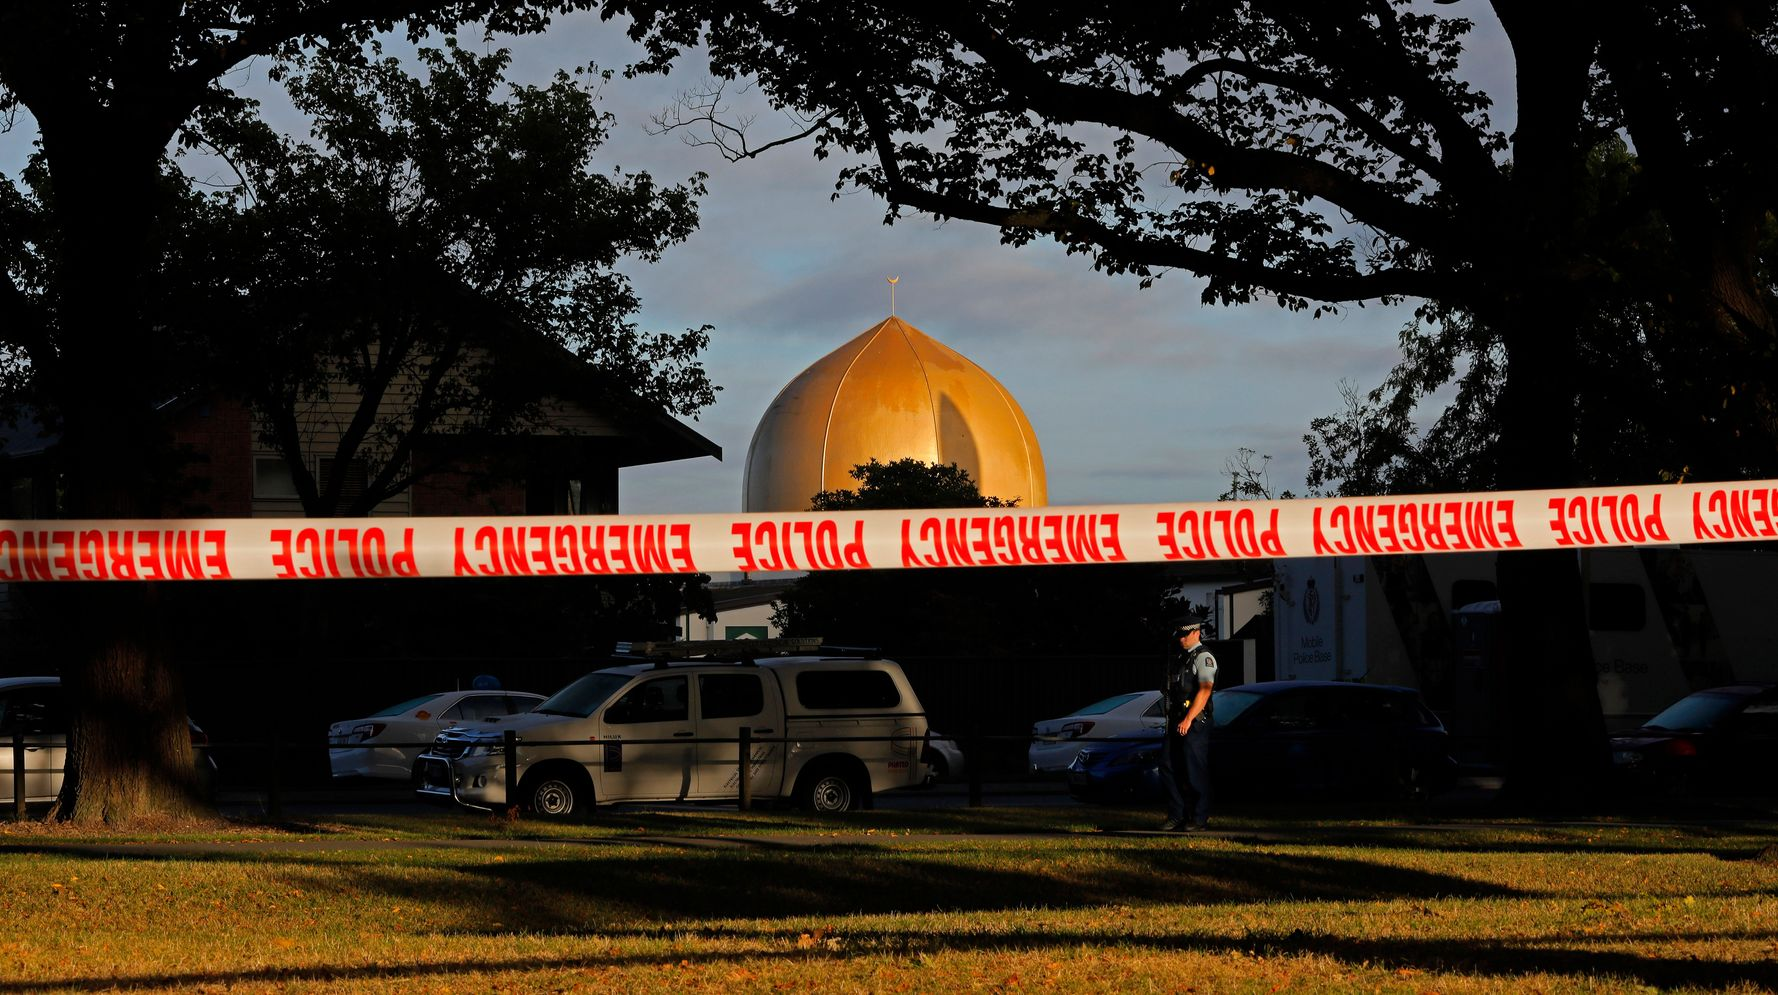 Report Shows How New Zealand Mosque Shooter Eluded Detection